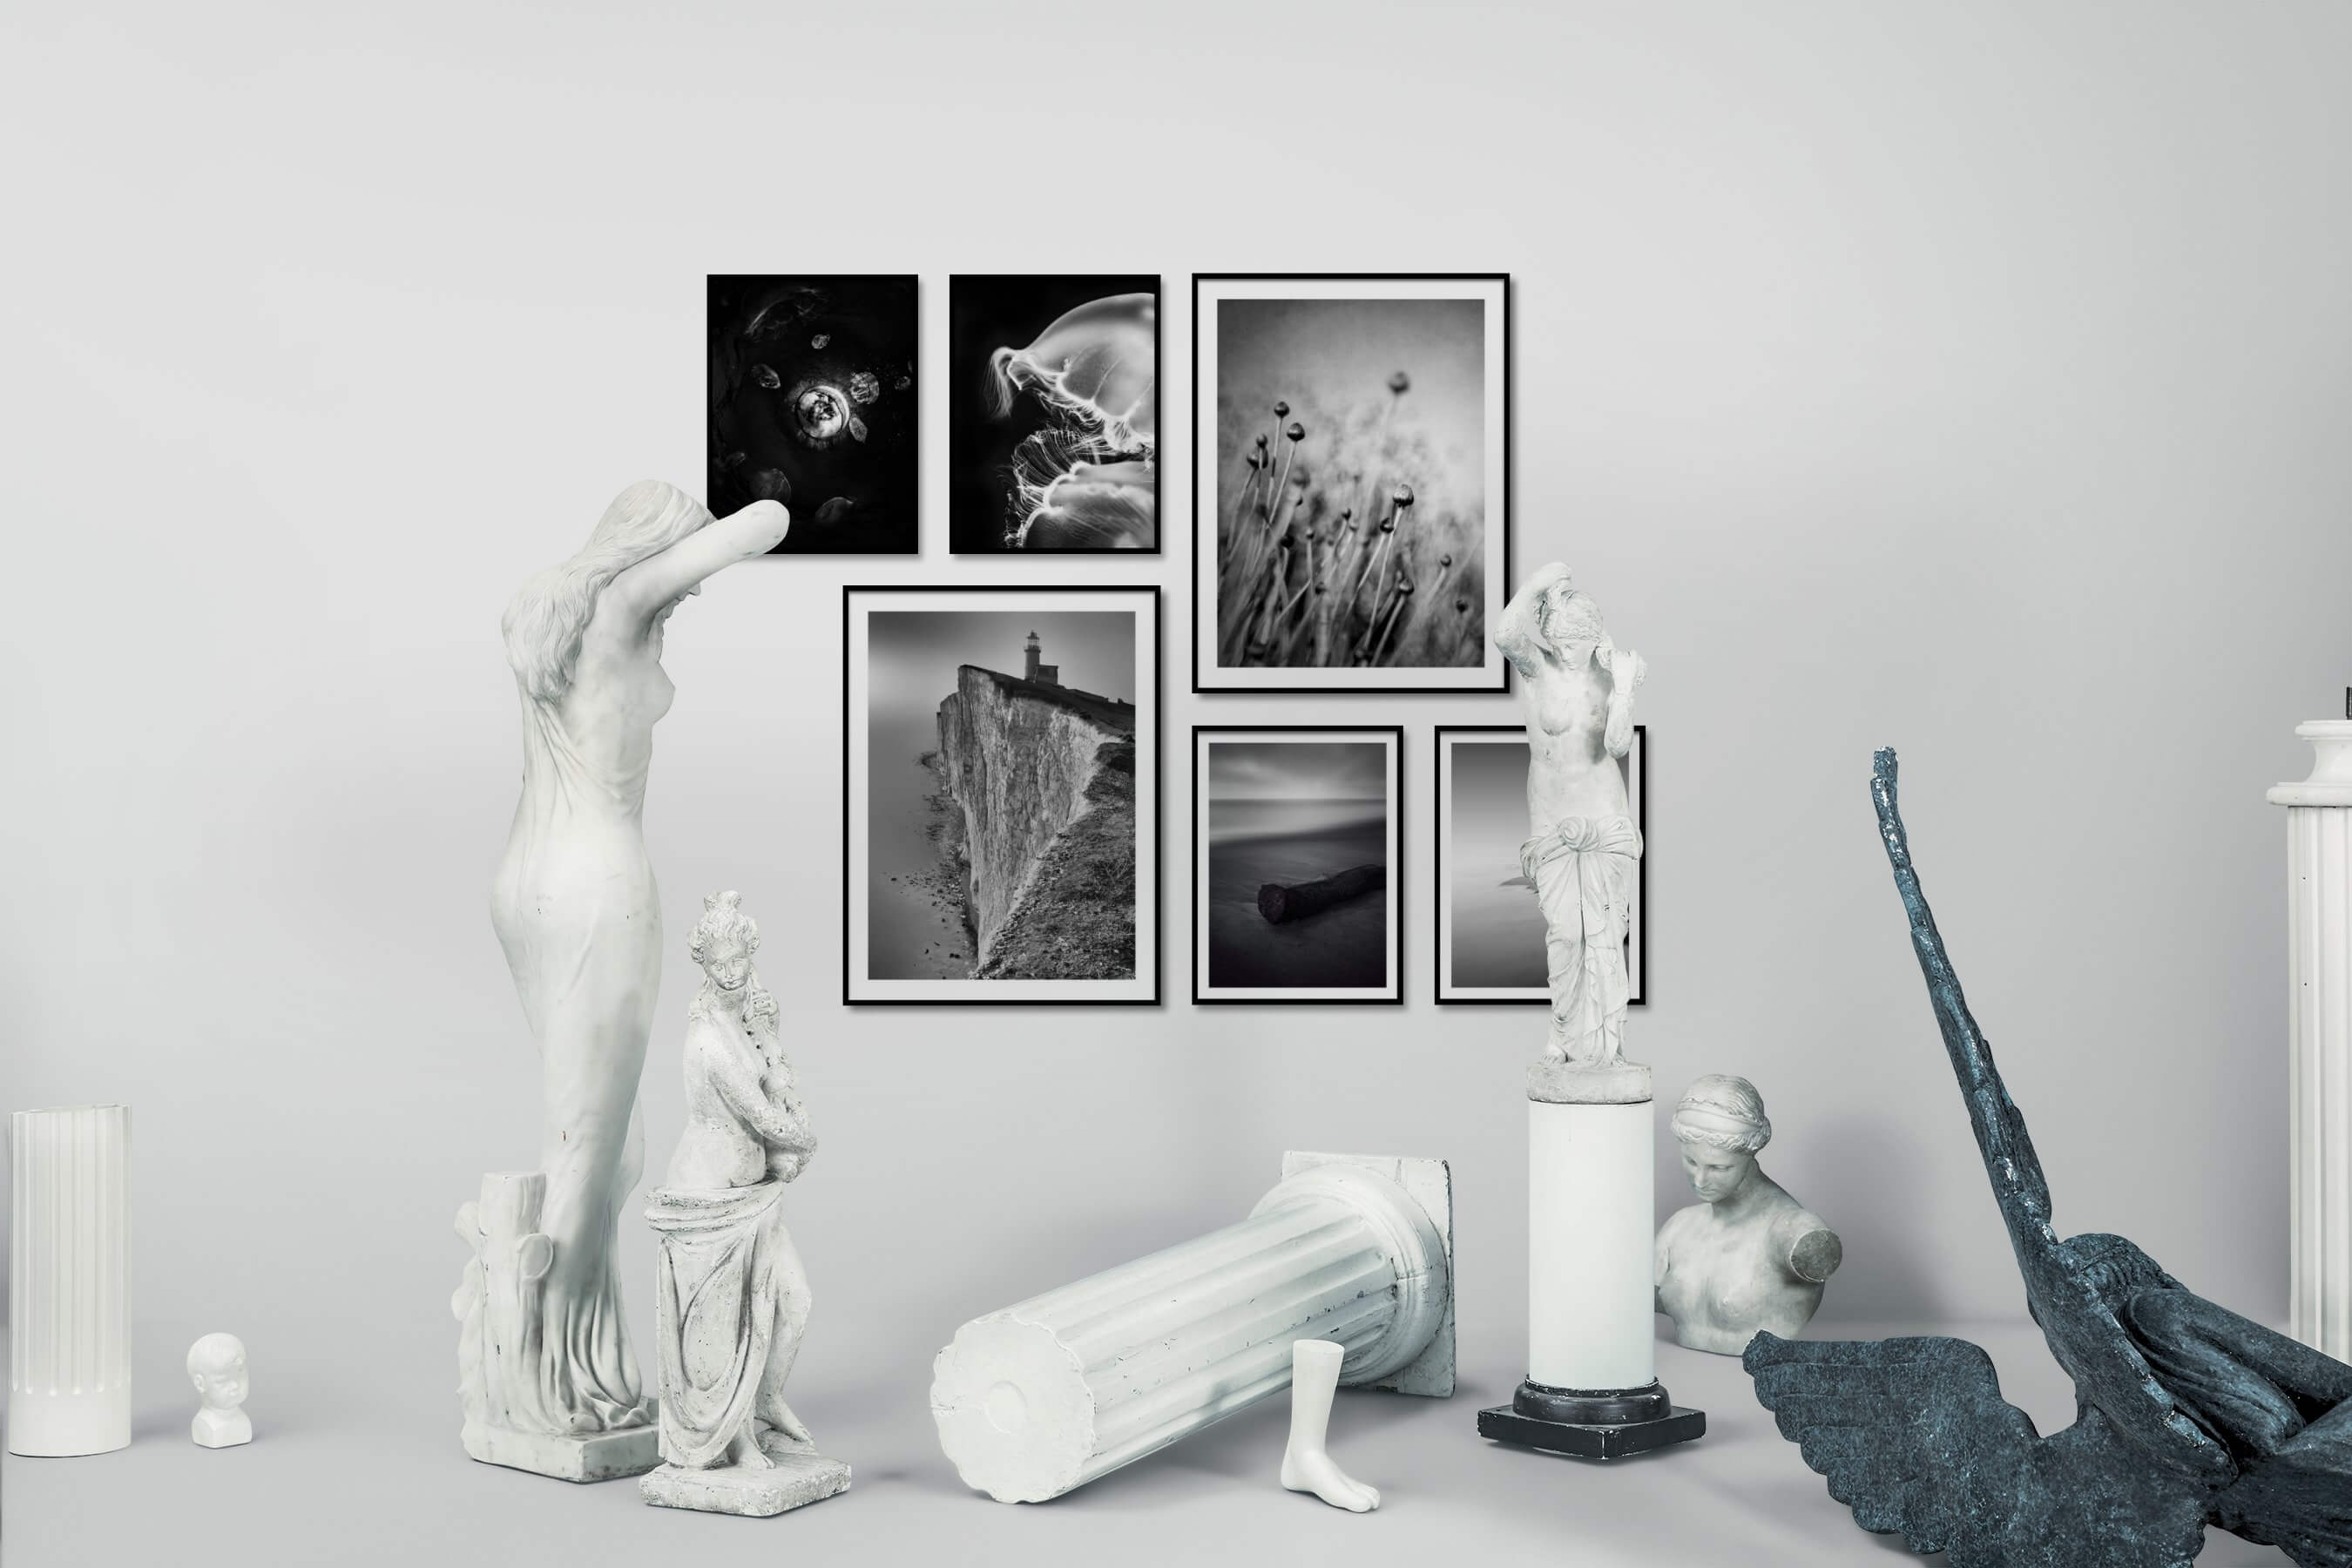 Gallery wall idea with six framed pictures arranged on a wall depicting Black & White, Dark Tones, For the Moderate, Animals, Beach & Water, Flowers & Plants, For the Minimalist, and Mindfulness